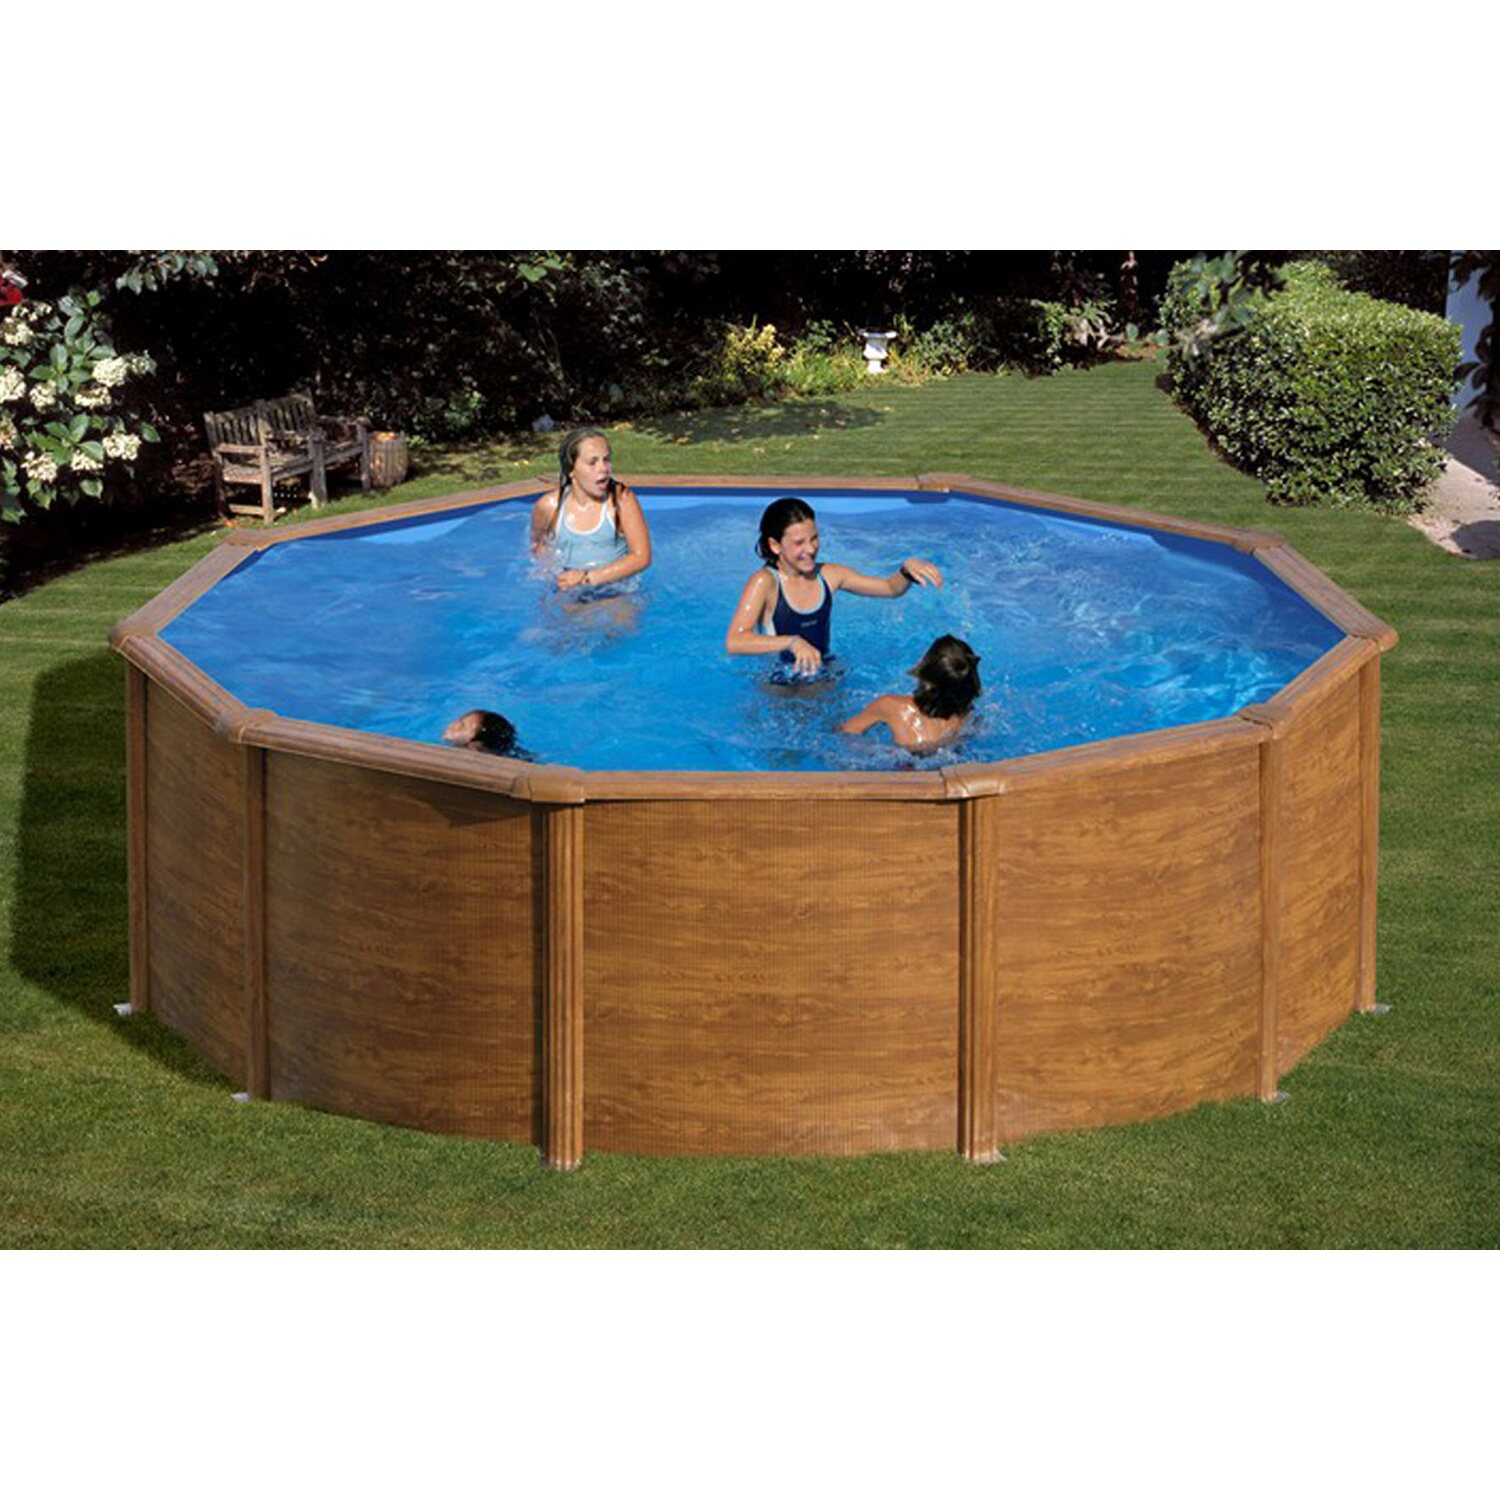 Summer fun stahlwand pool set holz dekor rhodos for Obi solarplane pool